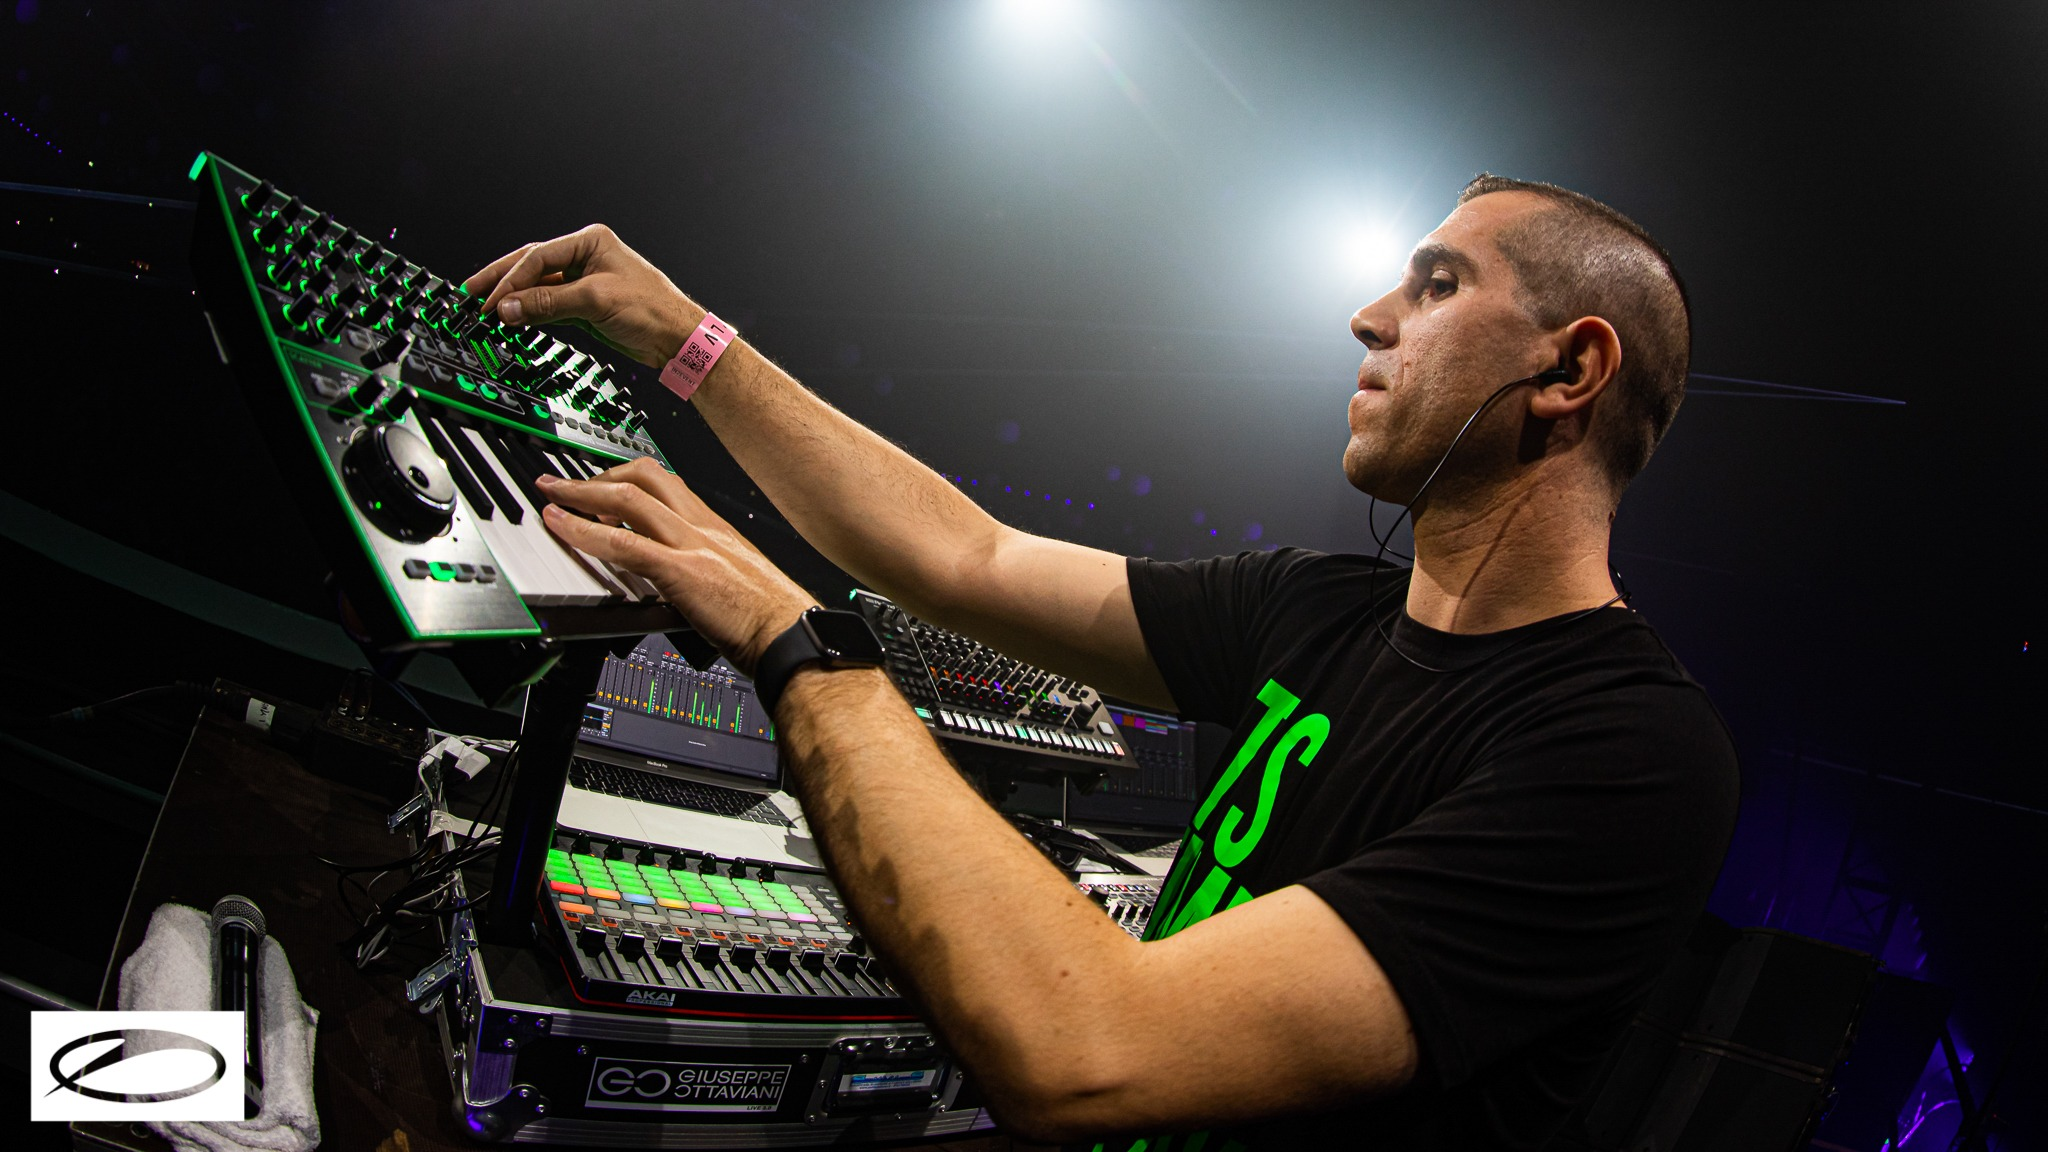 The maestro of trance working his magic with his new Live 3.0 set up | Image via ALDA